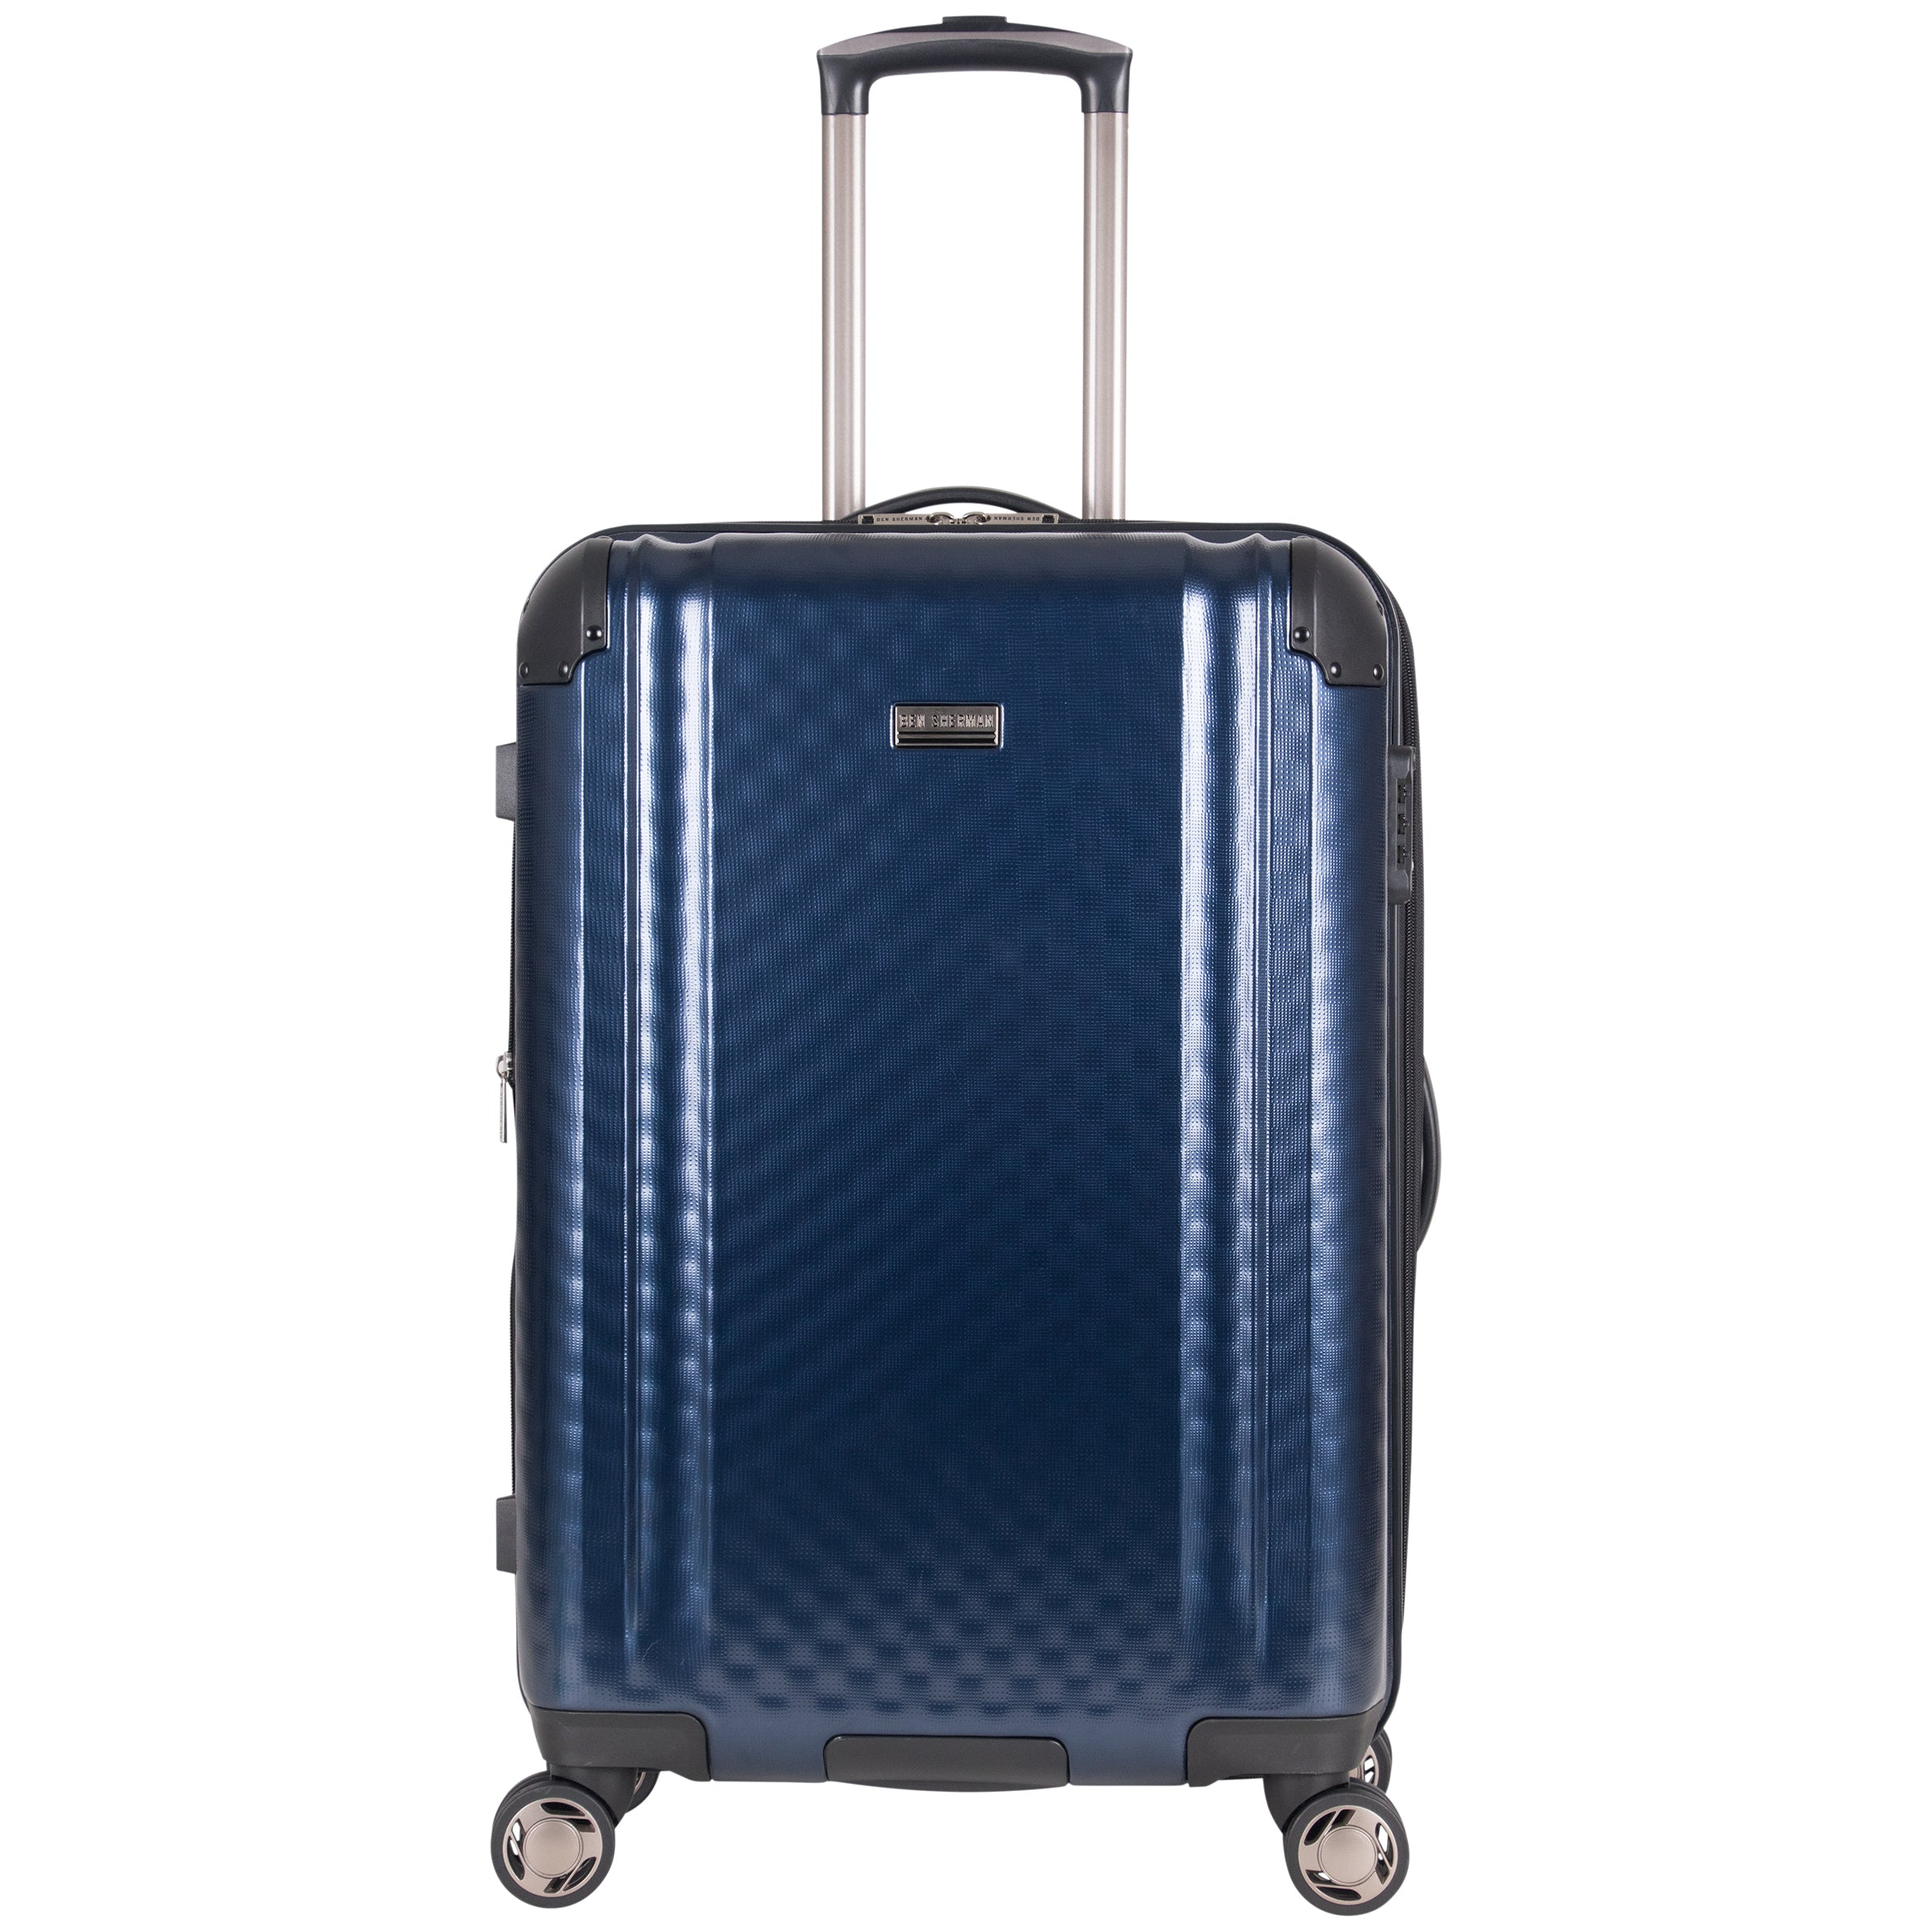 "Carlisle 24"" Upright Checked Luggage - Navy"